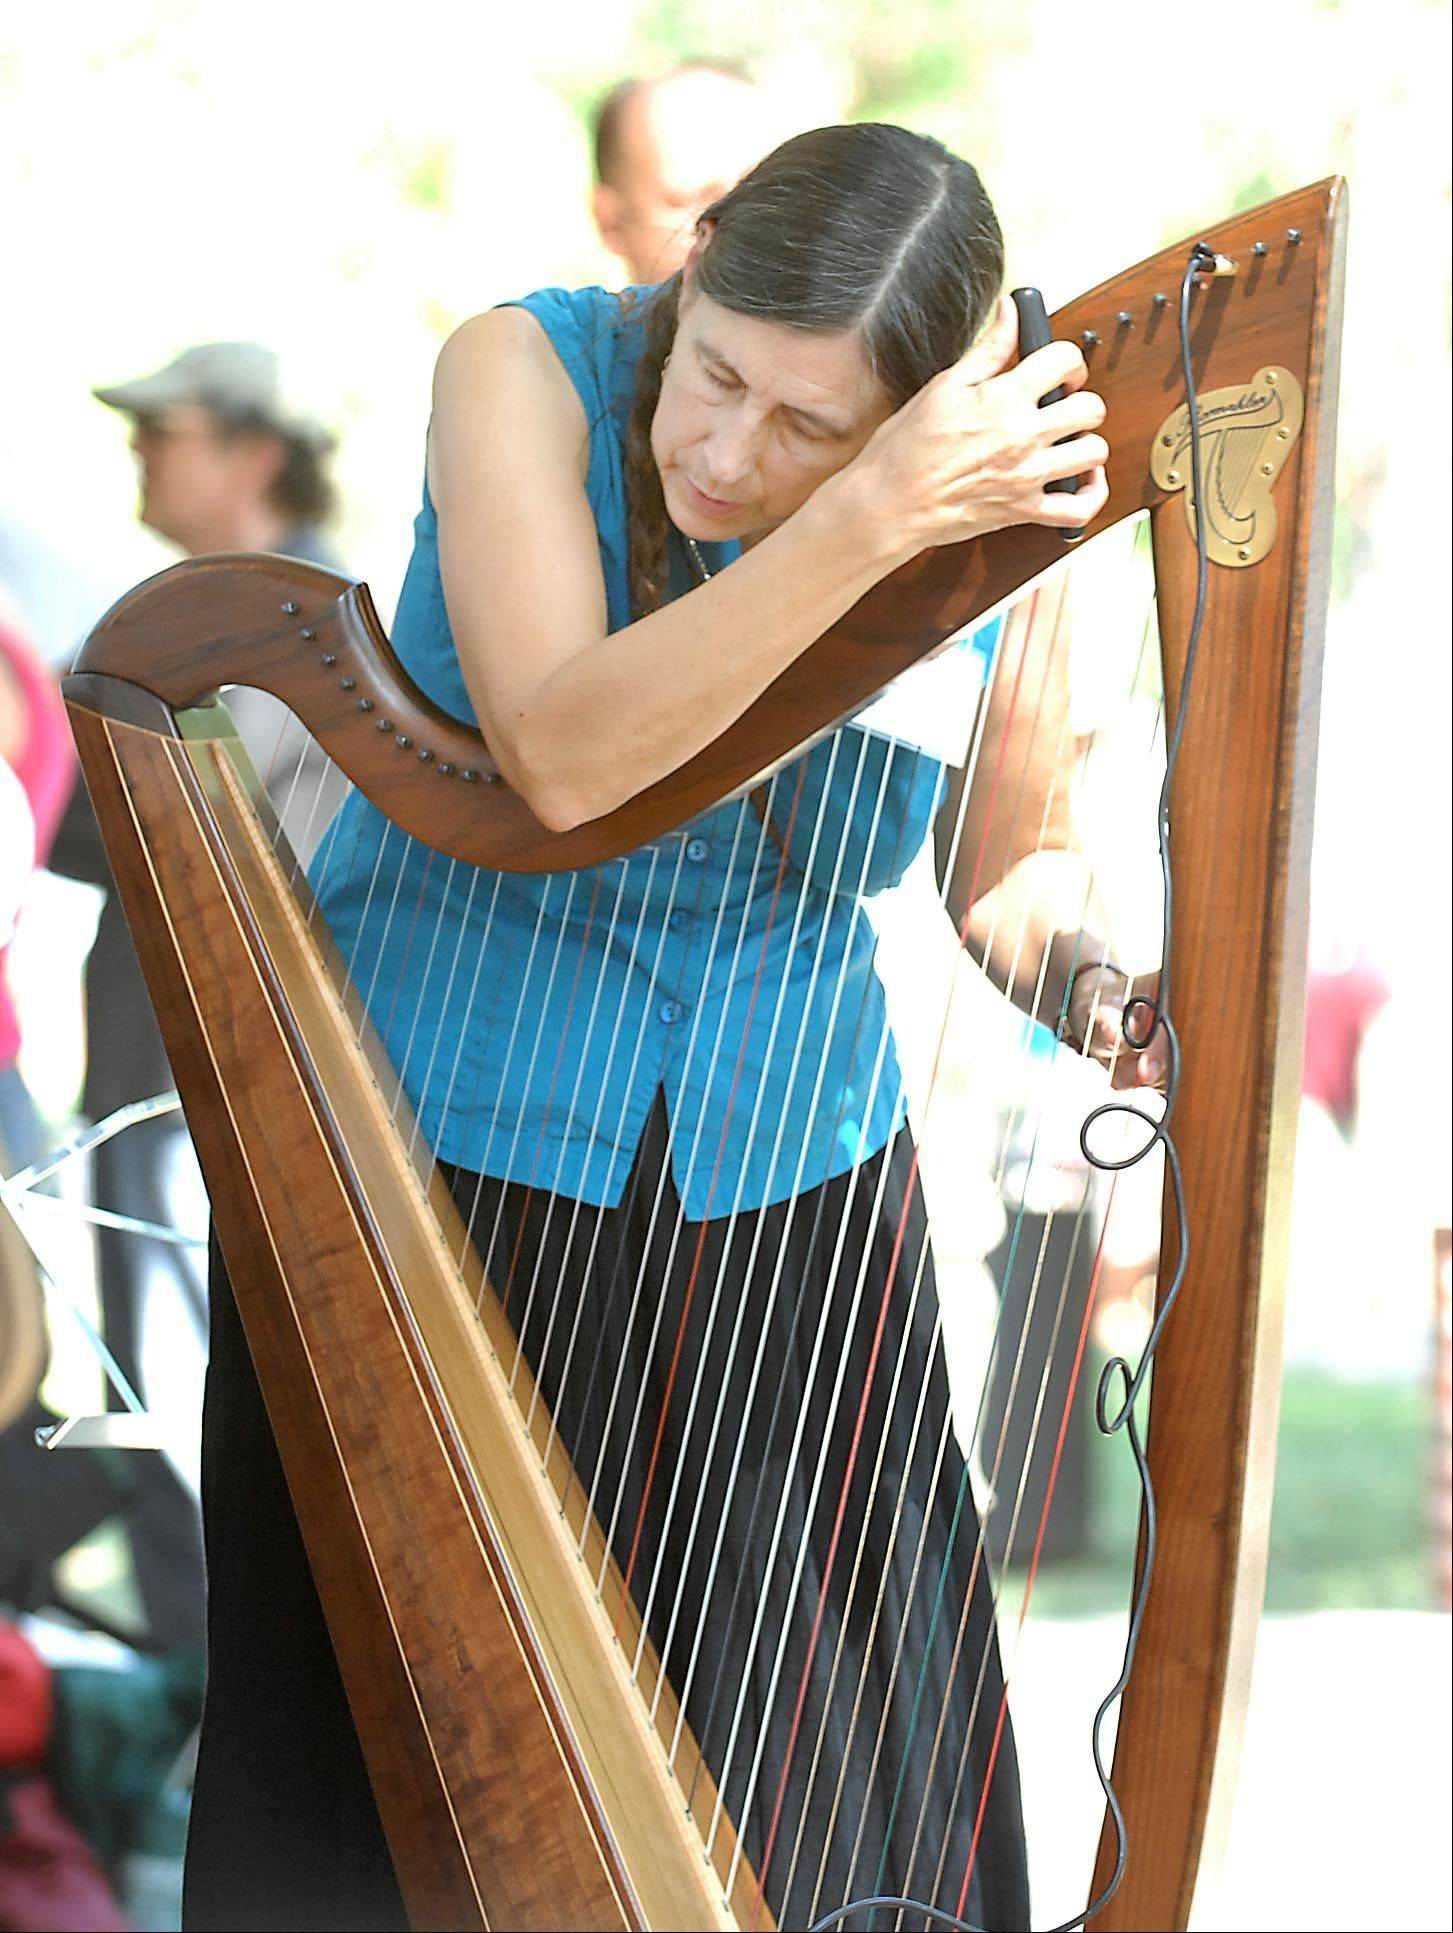 Loretta Teague of Minneapolis, Minn. tunes her harp at the 36th Annual Fox Valley Folk Music & Storytelling Festival Monday.